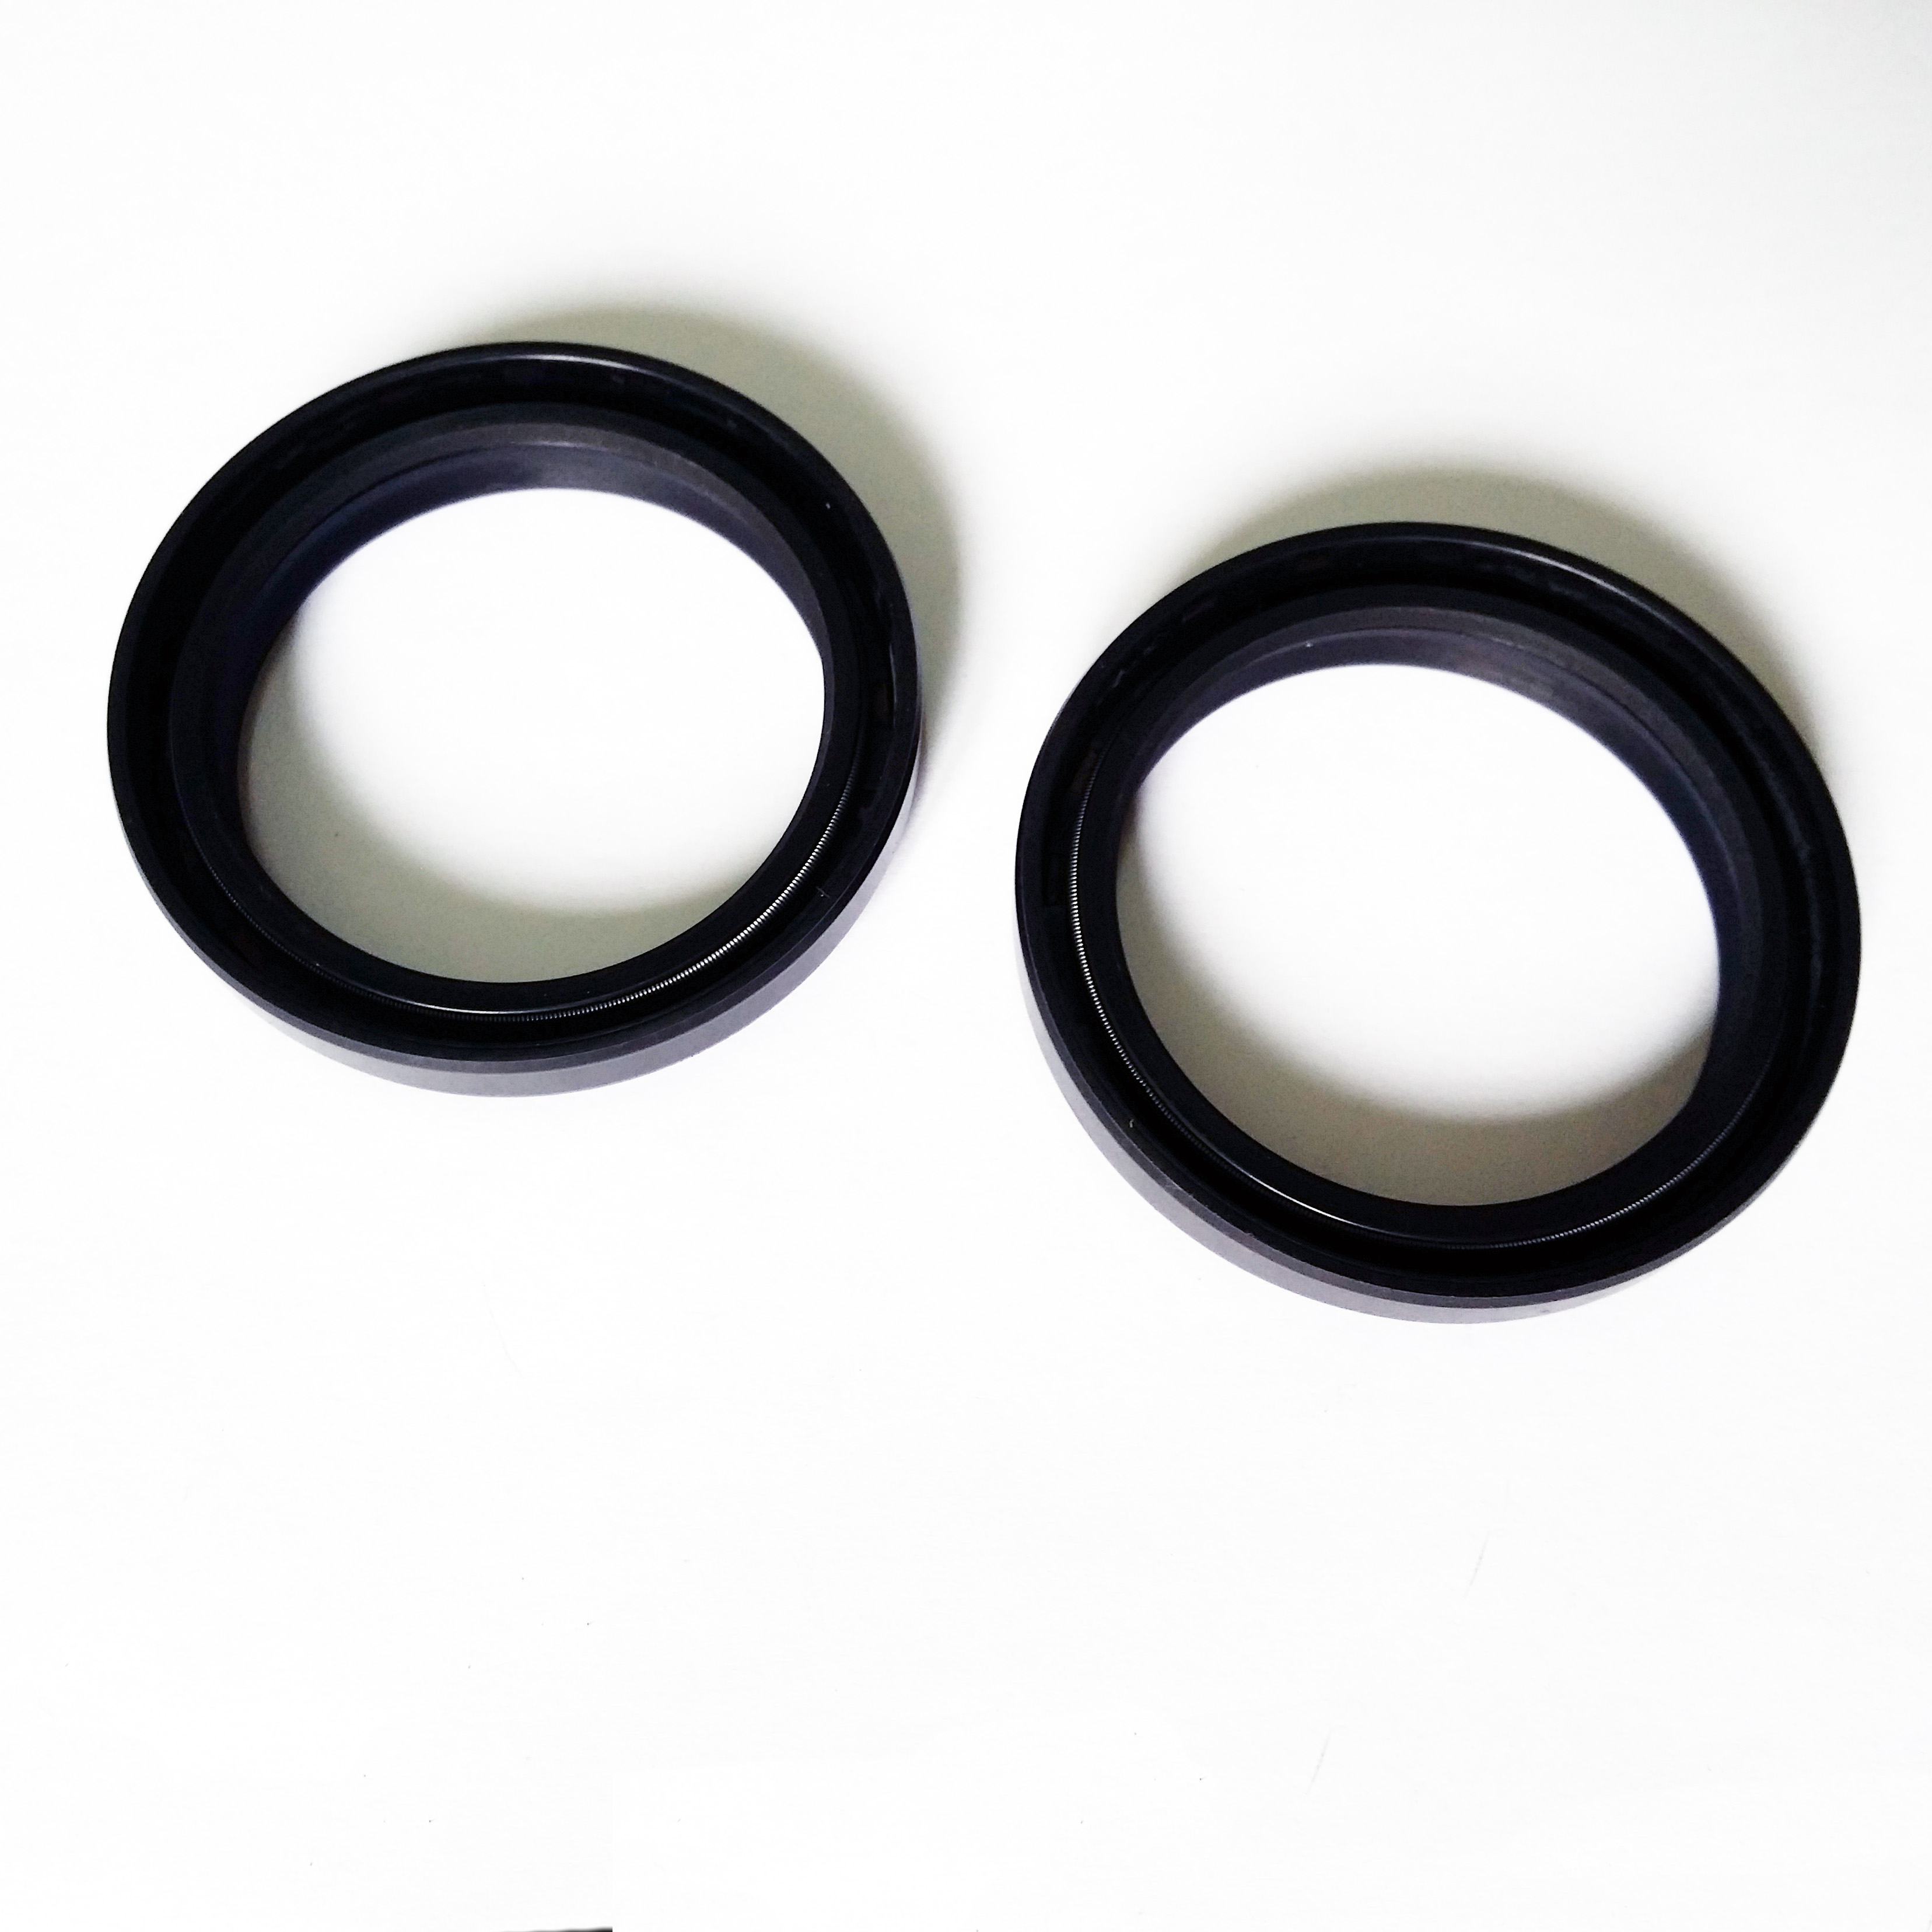 K-Tech KTM 350 EXC-F Six Days 2011-2016 NOK Front Fork Oil Seals